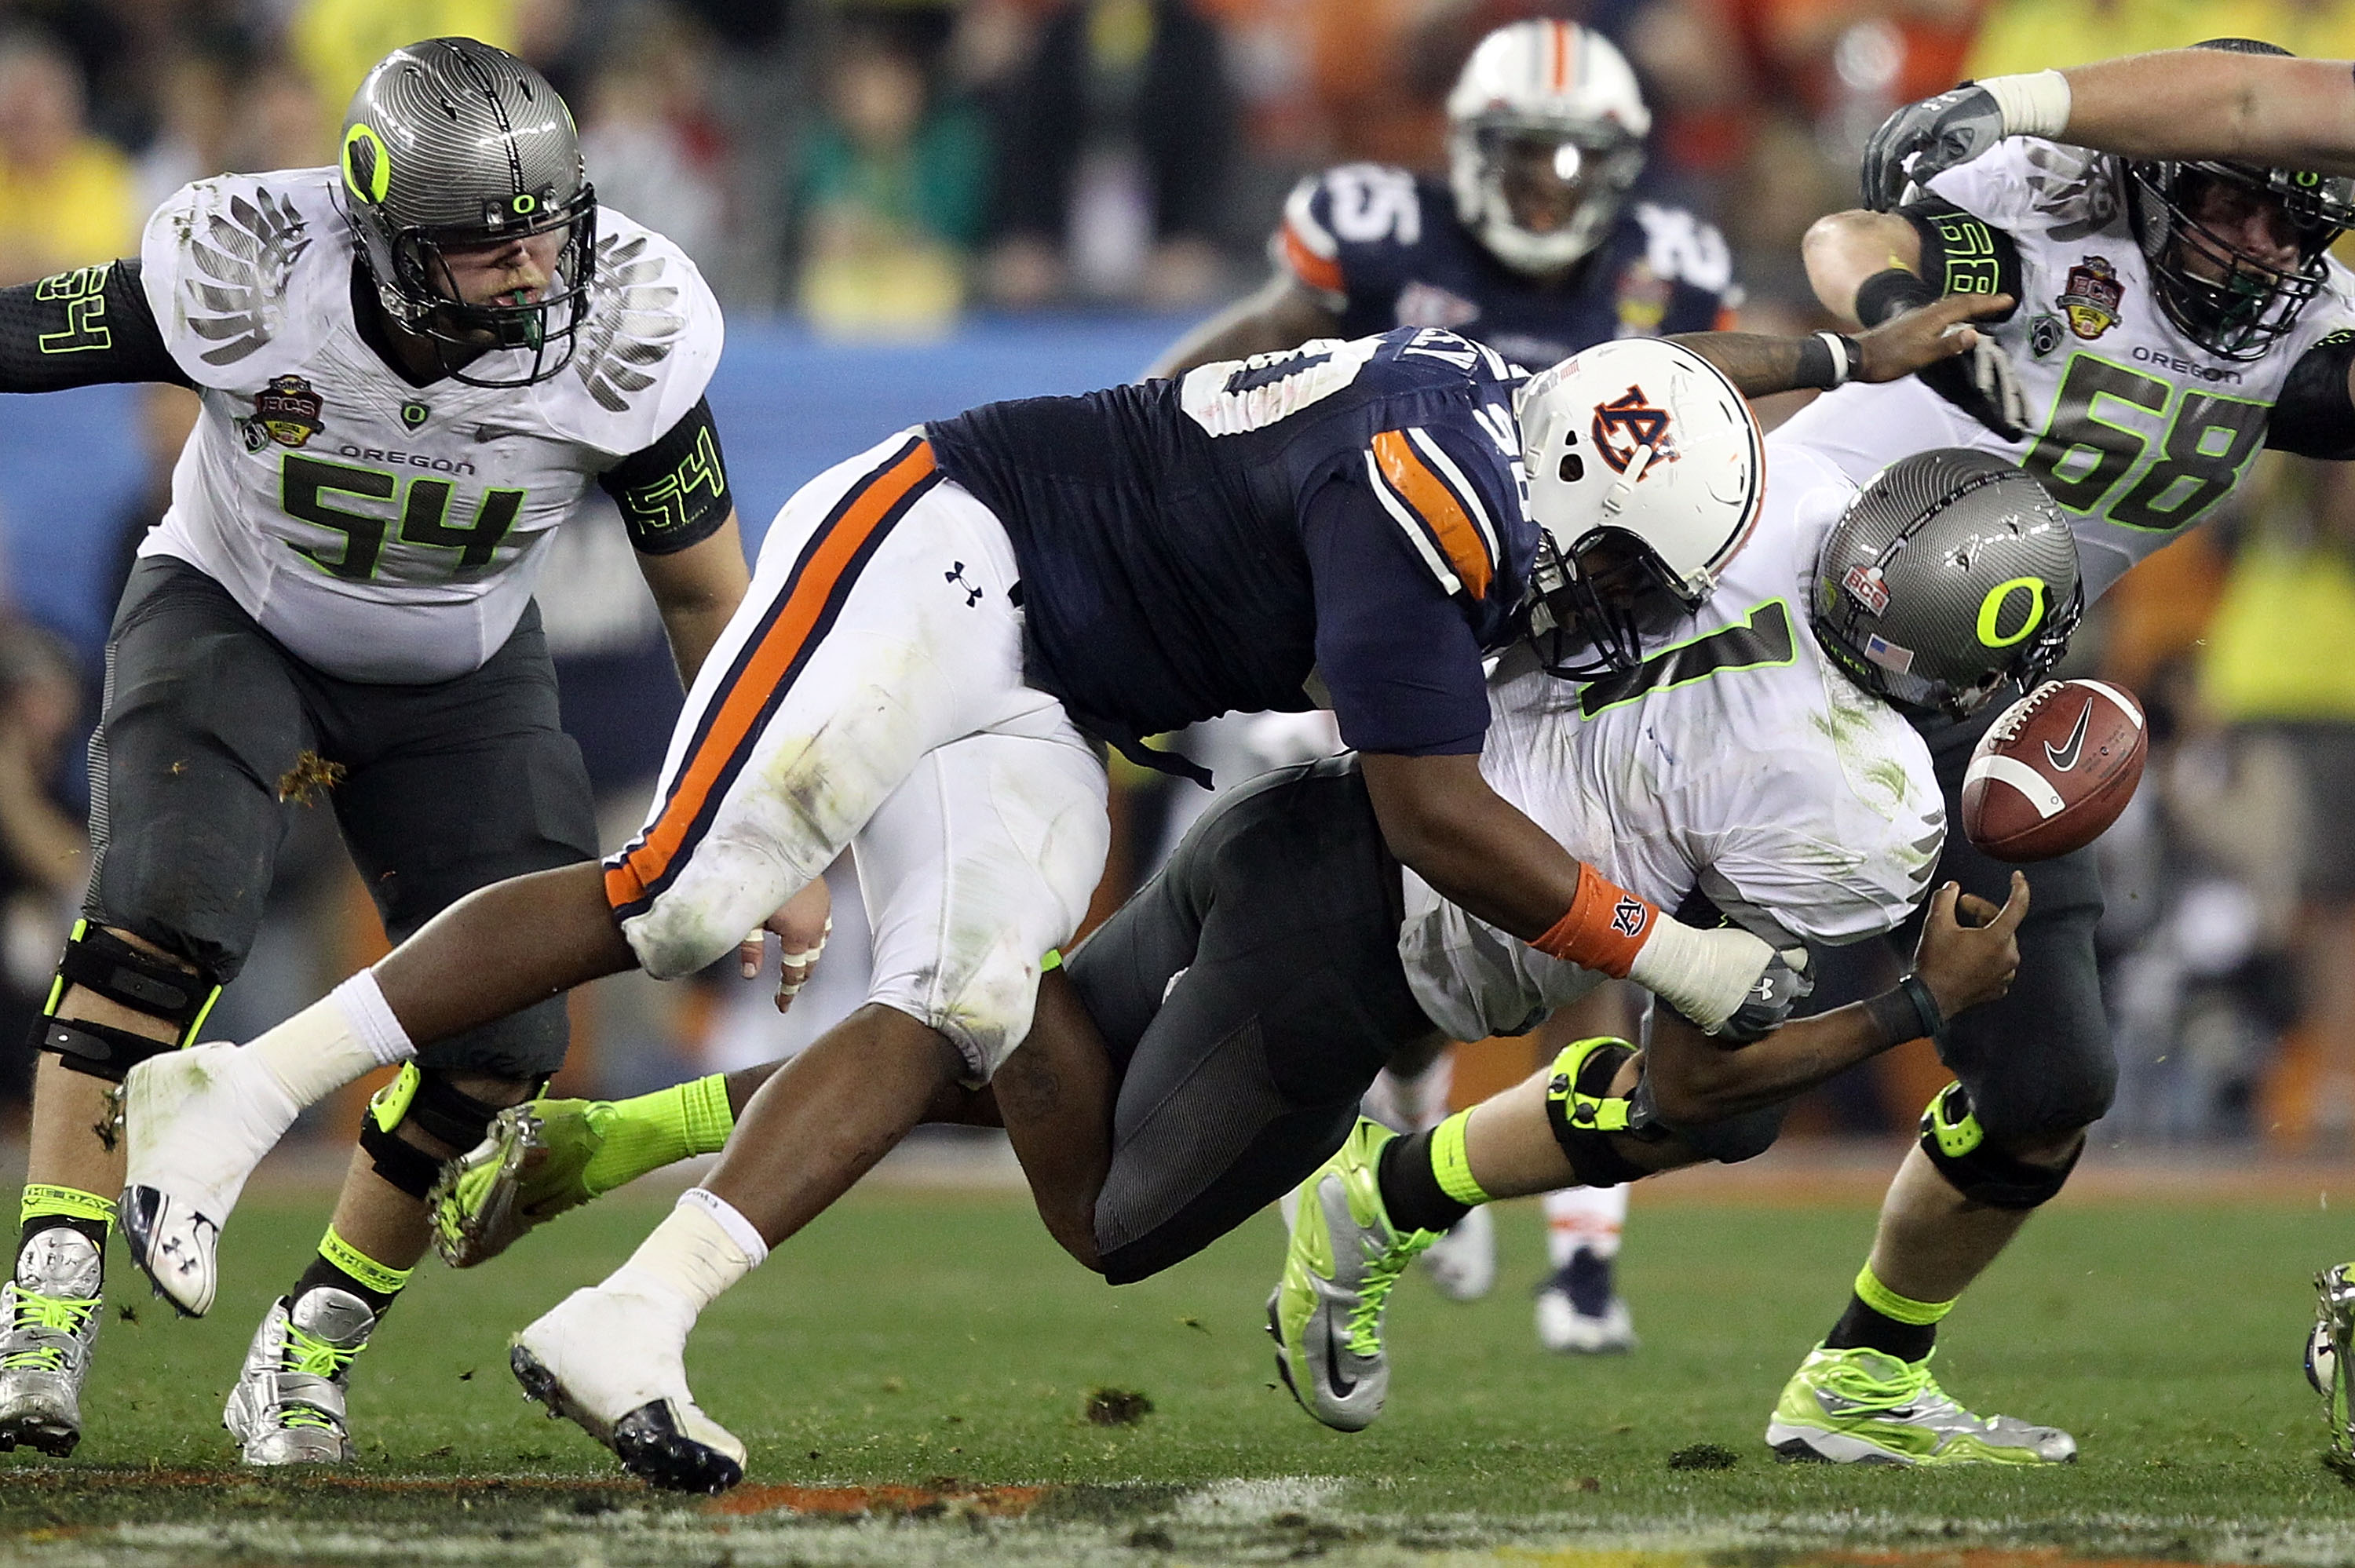 GLENDALE, AZ - JANUARY 10:  Nick Fairley #90 of the Auburn Tigers sacks Marvin Johnson #1 of the Oregon Ducks in the fourth quarter of the Tostitos BCS National Championship Game at University of Phoenix Stadium on January 10, 2011 in Glendale, Arizona.